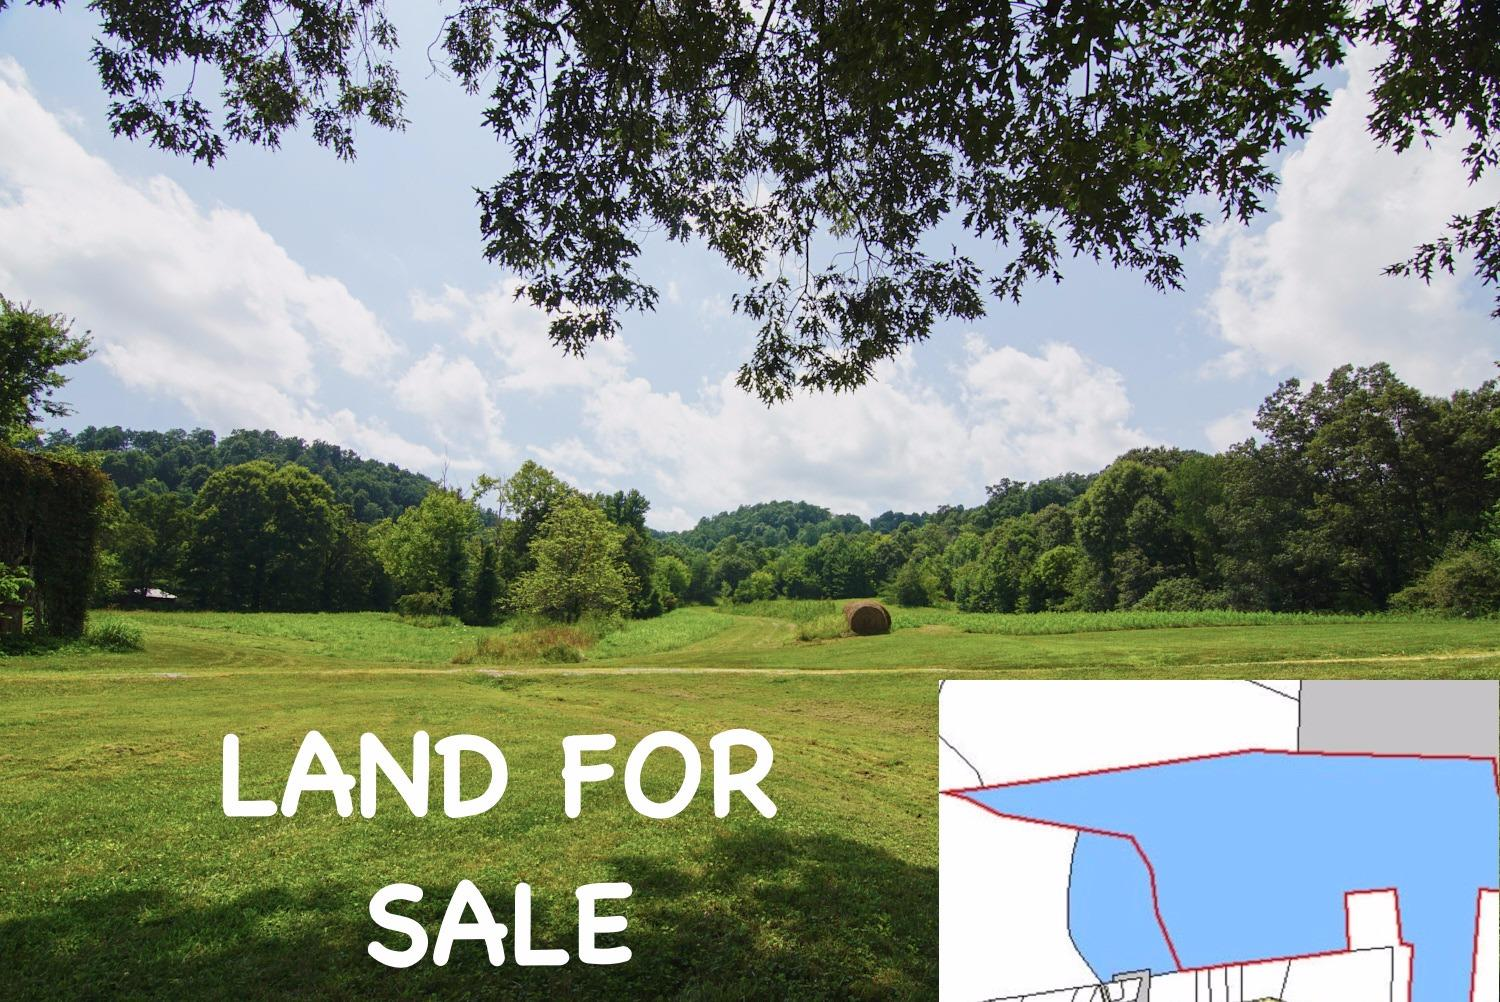 Great%20opportunity%20to%20own%20a%20large%20tract%20of%20land%20in%20Boyle%20county%20only%205%20to%2010%20minutes%20from%20Danville.%20129%20acres%20mostly%20wooded%20with%20several%20acres%20of%20cleared%20fields.%20There%20is%20a%20large%20pond%20and%20two%20rental%20mobile%20homes%20which%20are%20very%20neat%20and%20currently%20rented%20for%20a%20nice%20income.%20There%20are%20several%20ridges%20with%20great%20views%20of%20the%20surrounding%20countryside.%20A%20block%20structure%20on%20a%20high%20ridge%20could%20be%20repaired%20and%20finished,%20electricity%20is%20at%20the%20structure.%20%20Fantastic%20area%20for%20hunting.%20Great%20place%20to%20build%20or%20develop.%20Call%20for%20more%20details%20and%20outline%20of%20the%20property.